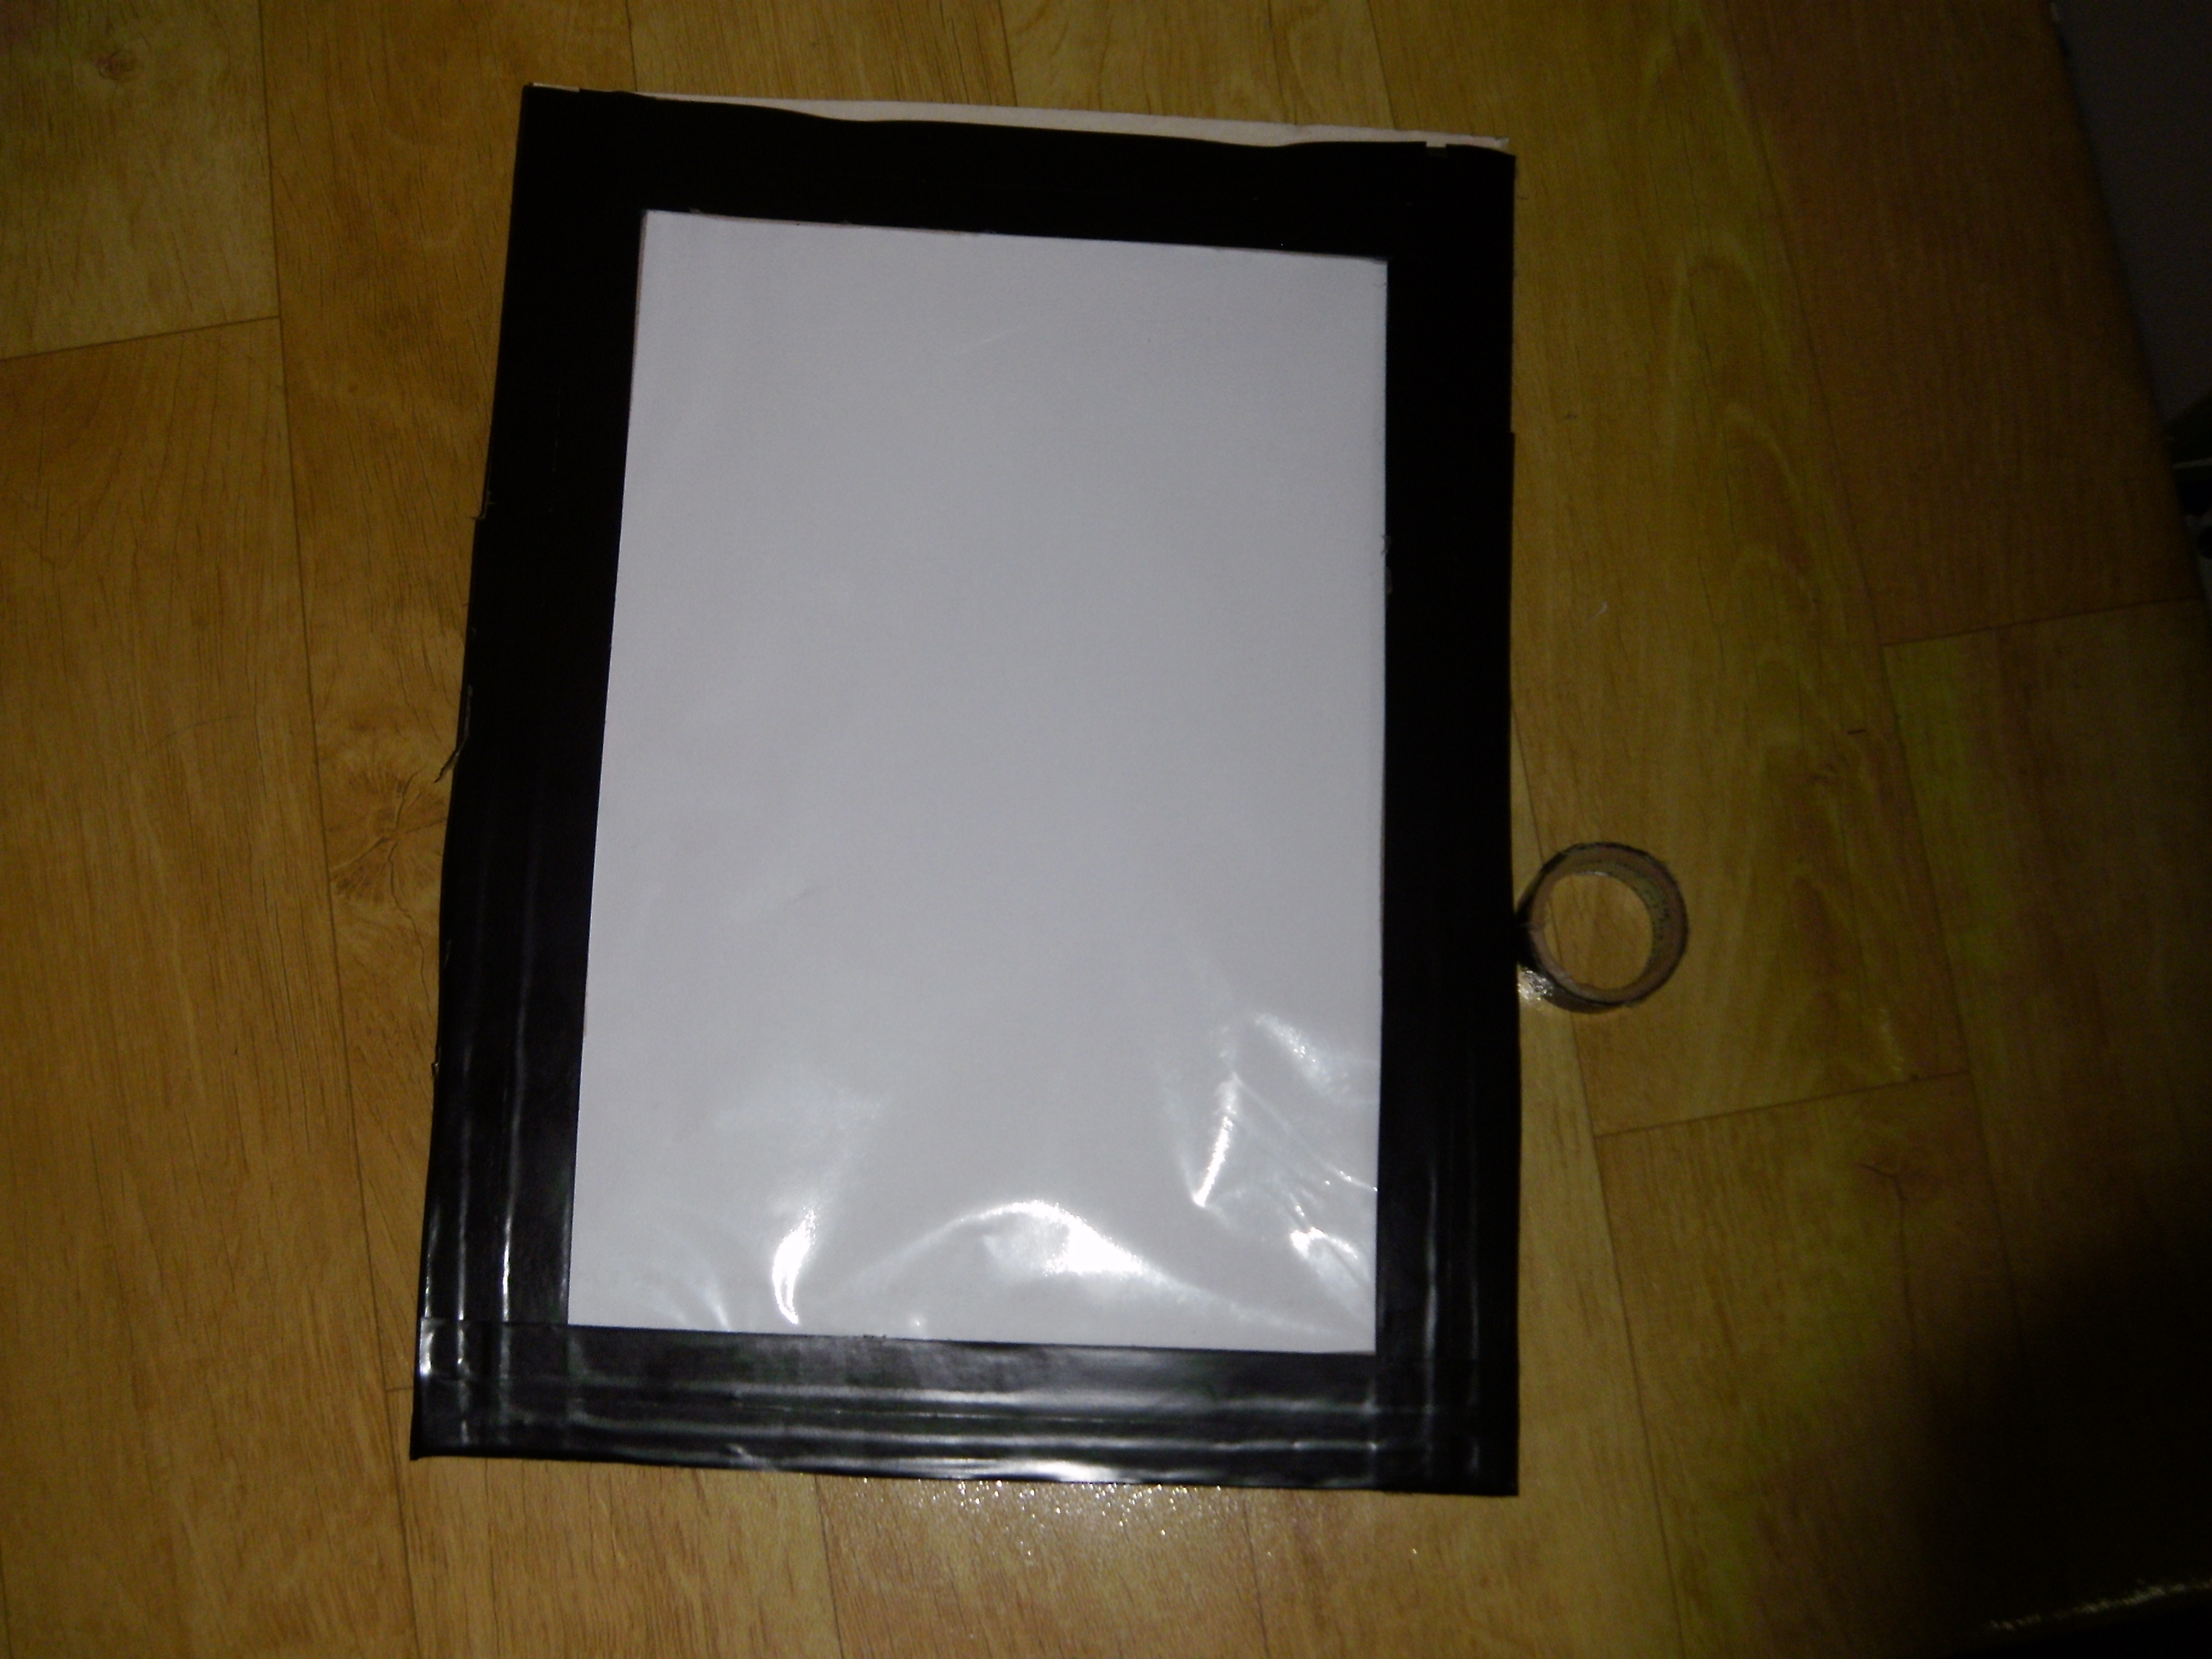 Picture of Changeable Character Template Whiteboard